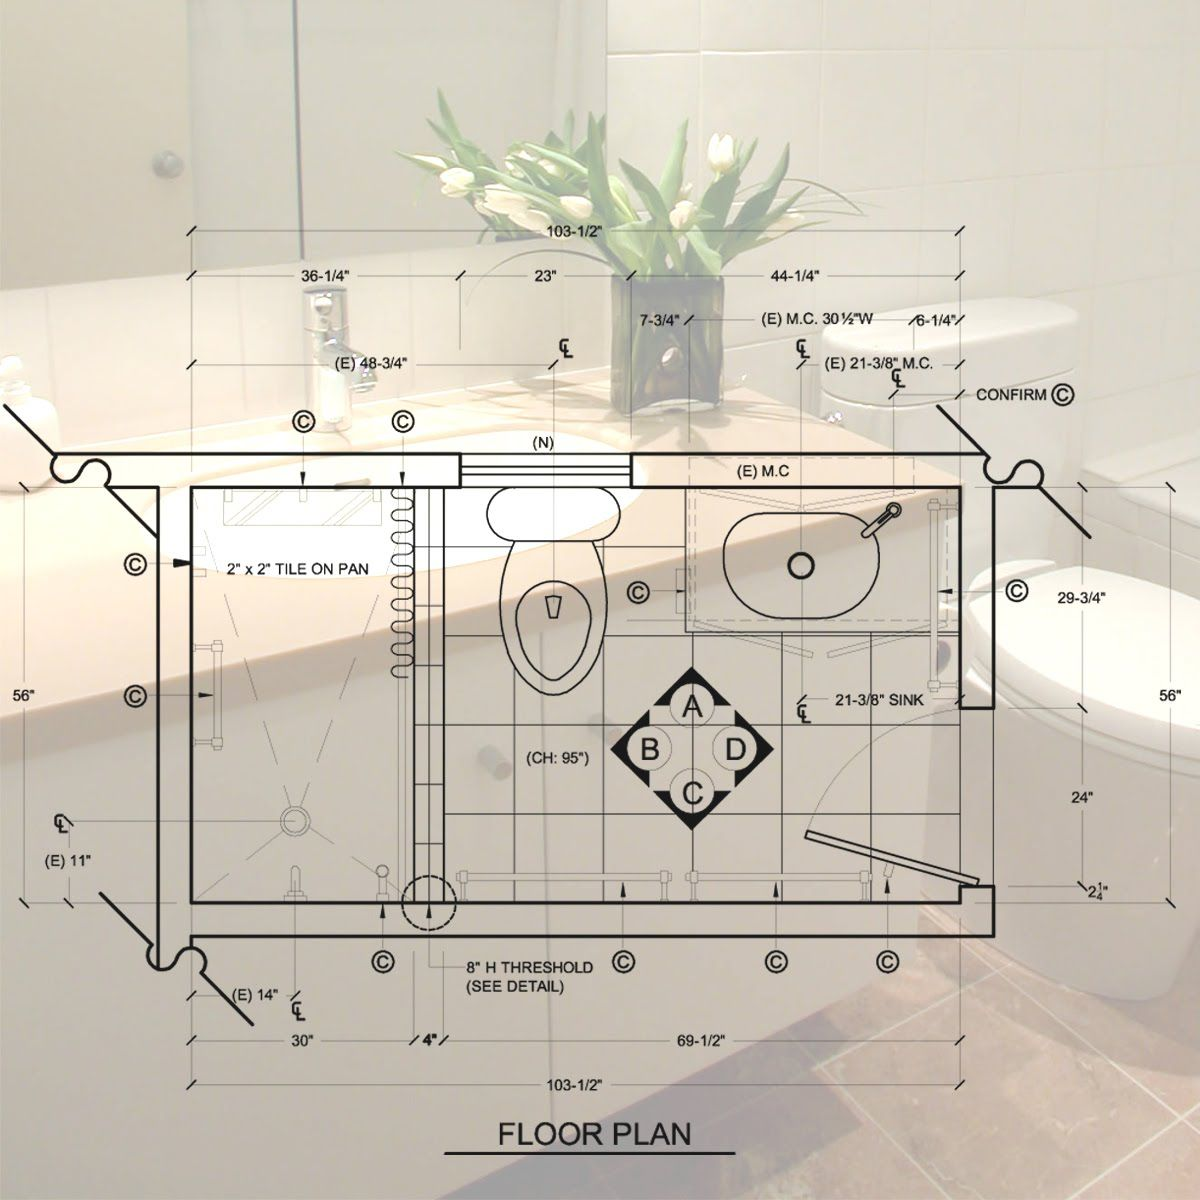 C l k design studio standard 5 39 x 8 39 bathroom design for Bathroom designs 8 x 12